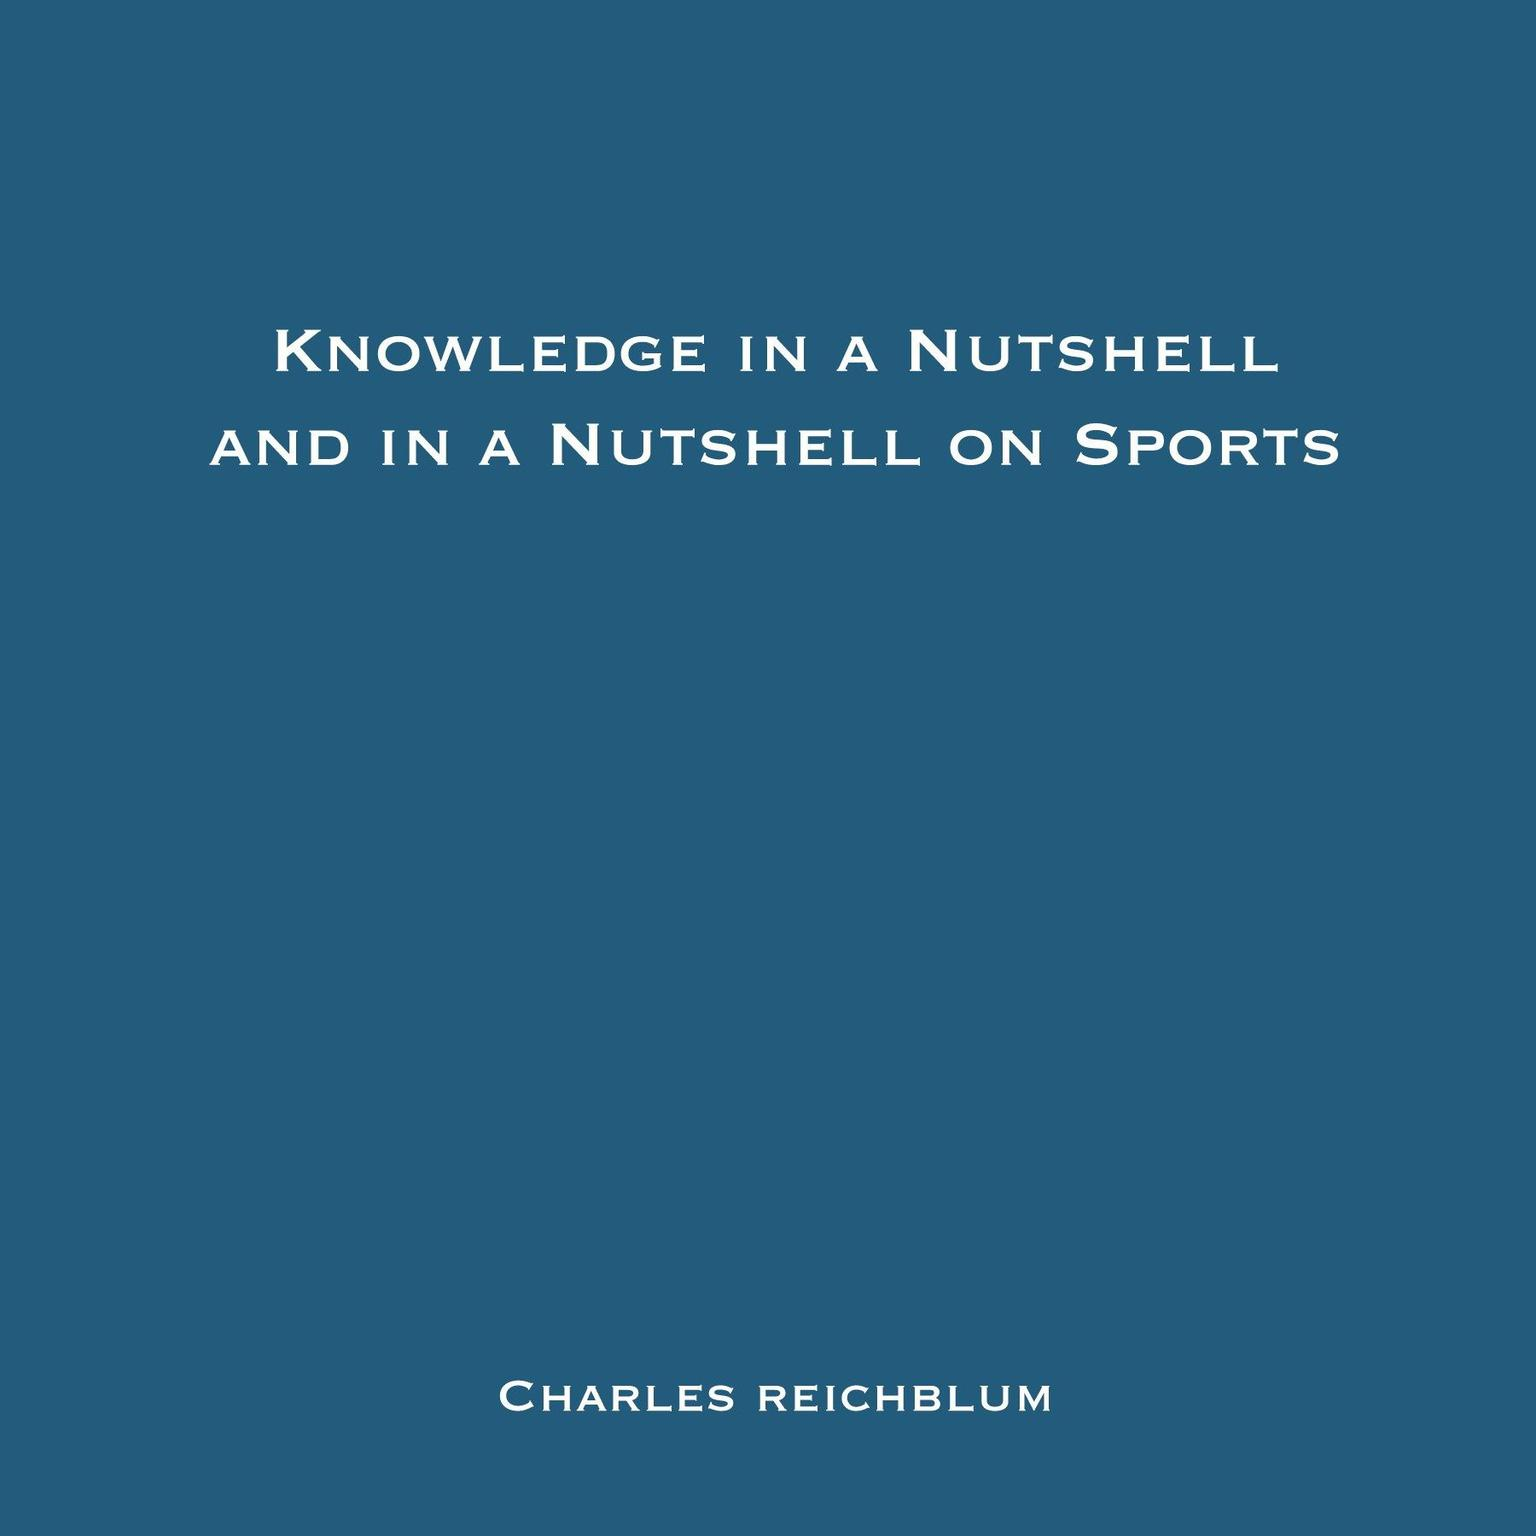 Printable Knowledge in a Nutshell and Knowledge in a Nutshell on Sports Audiobook Cover Art